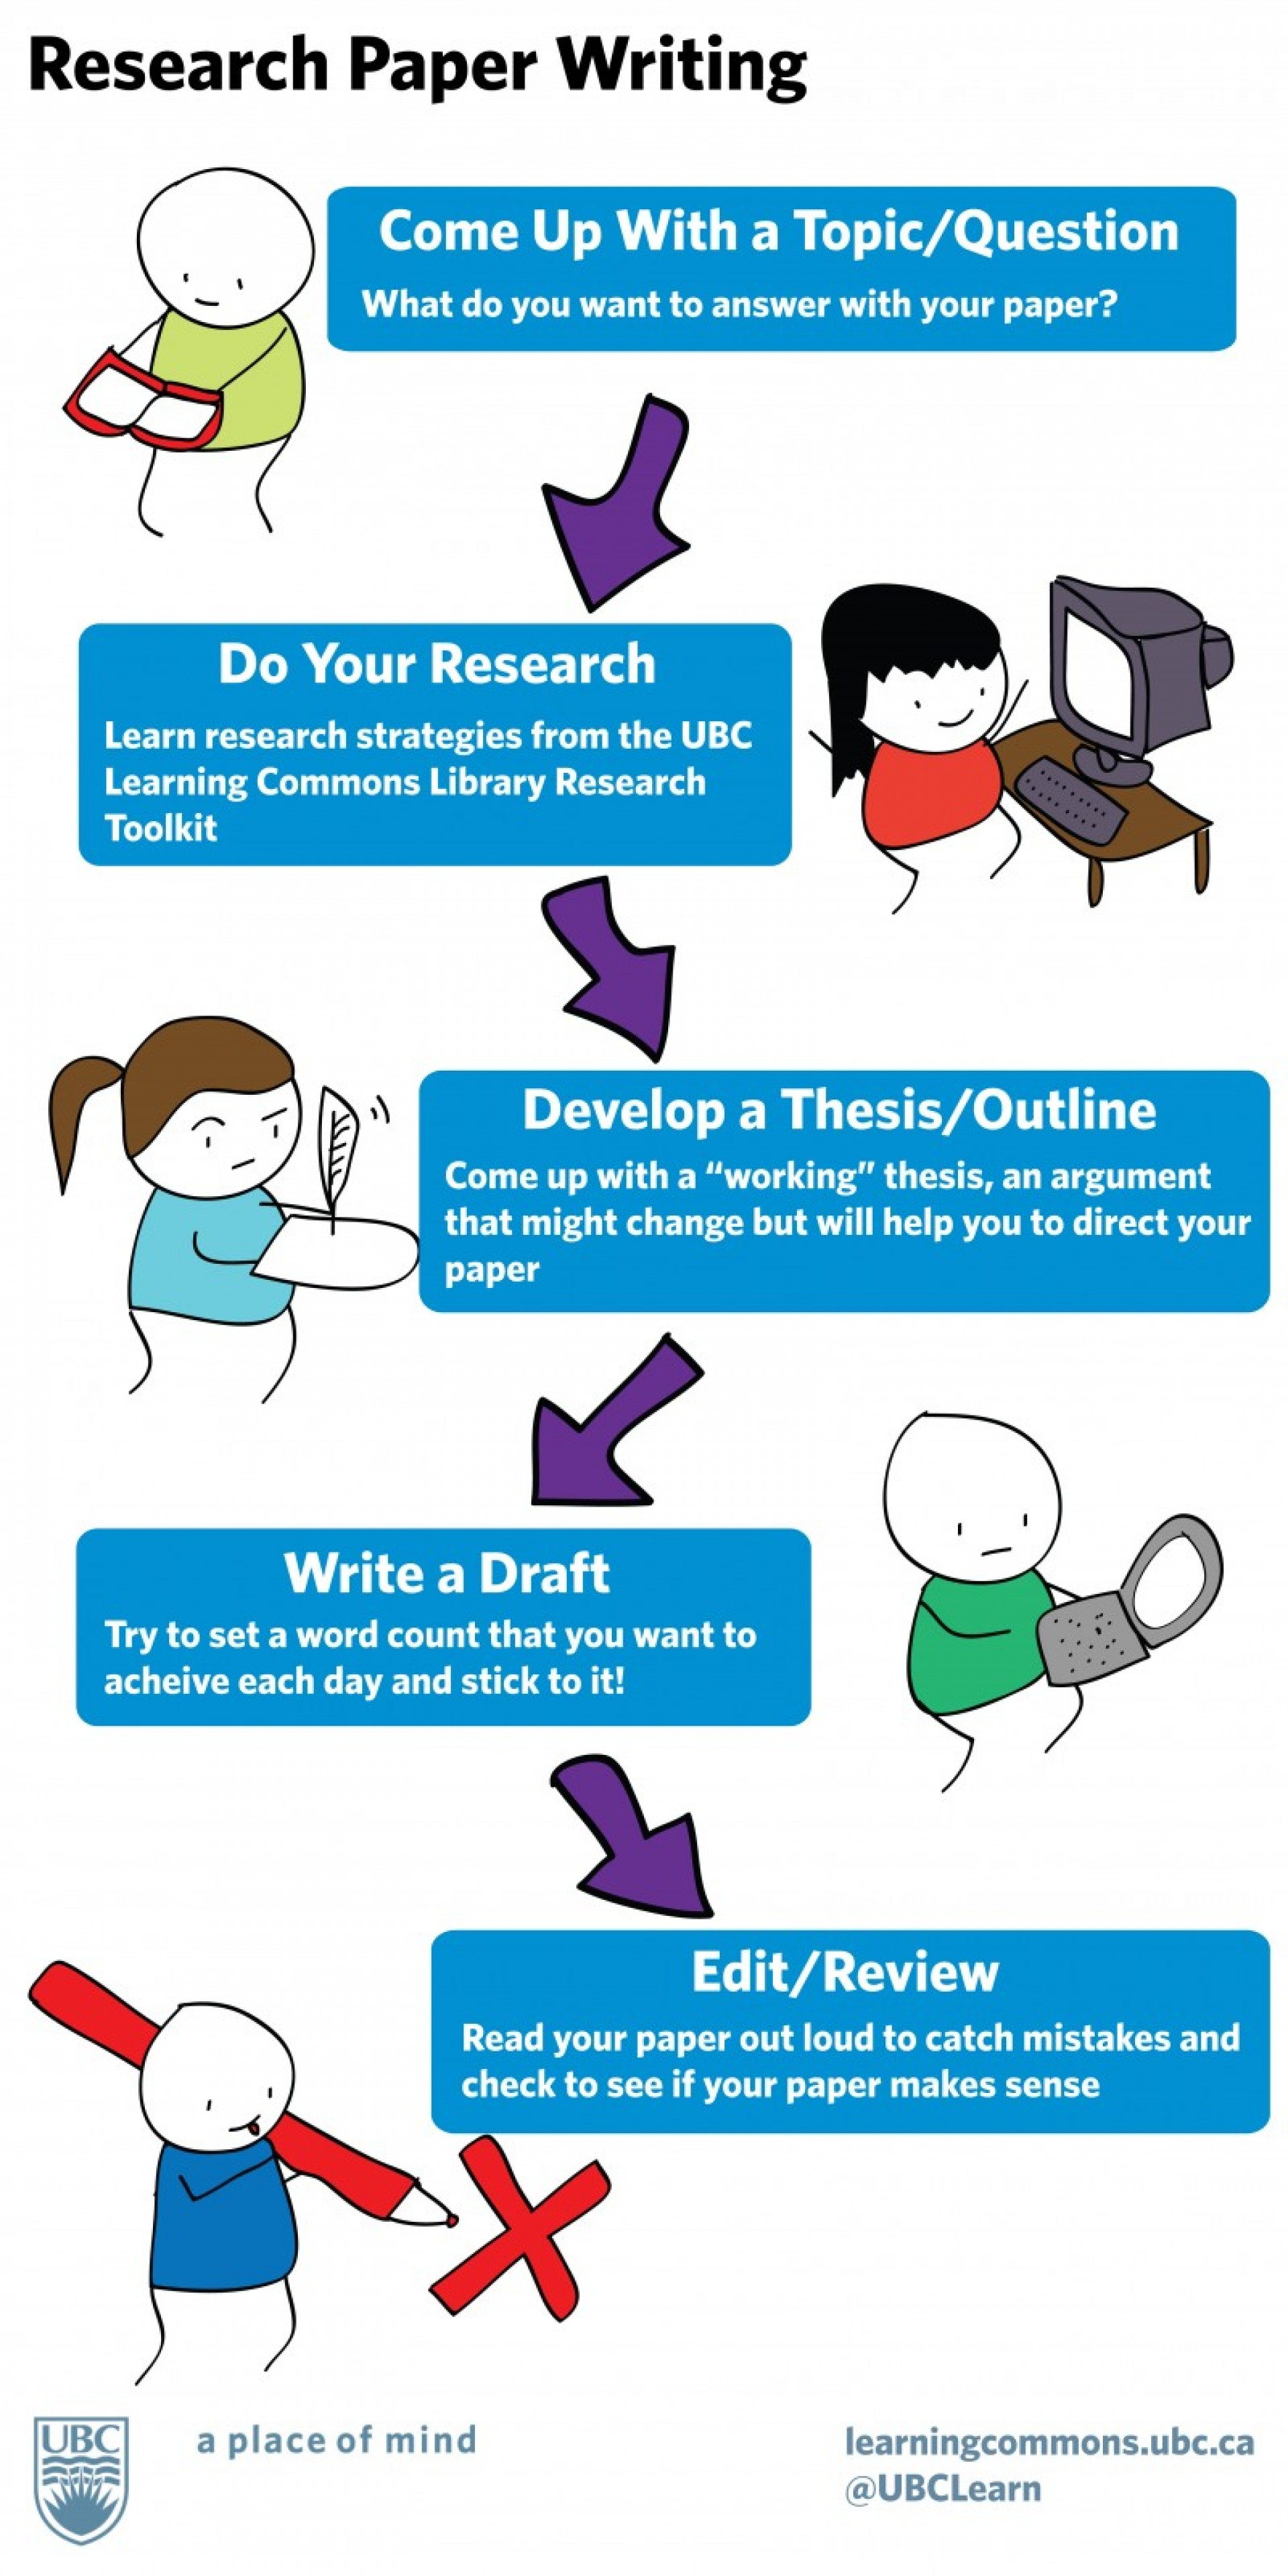 027 Writing Toolkit Infographic Free Download Researchs On Education Stunning Research Papers 1920